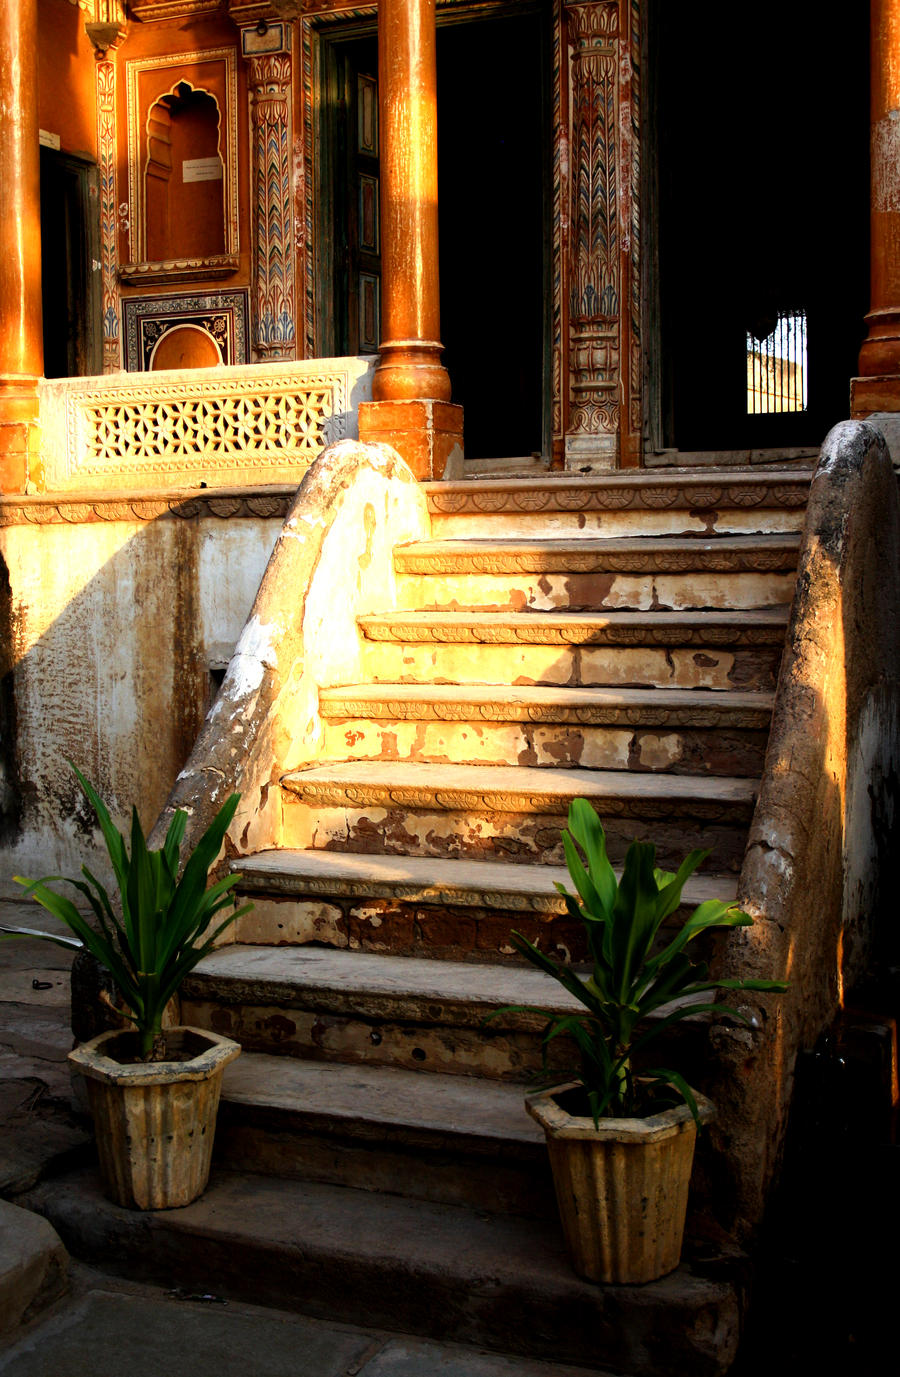 India - Haveli by Gudulett-e